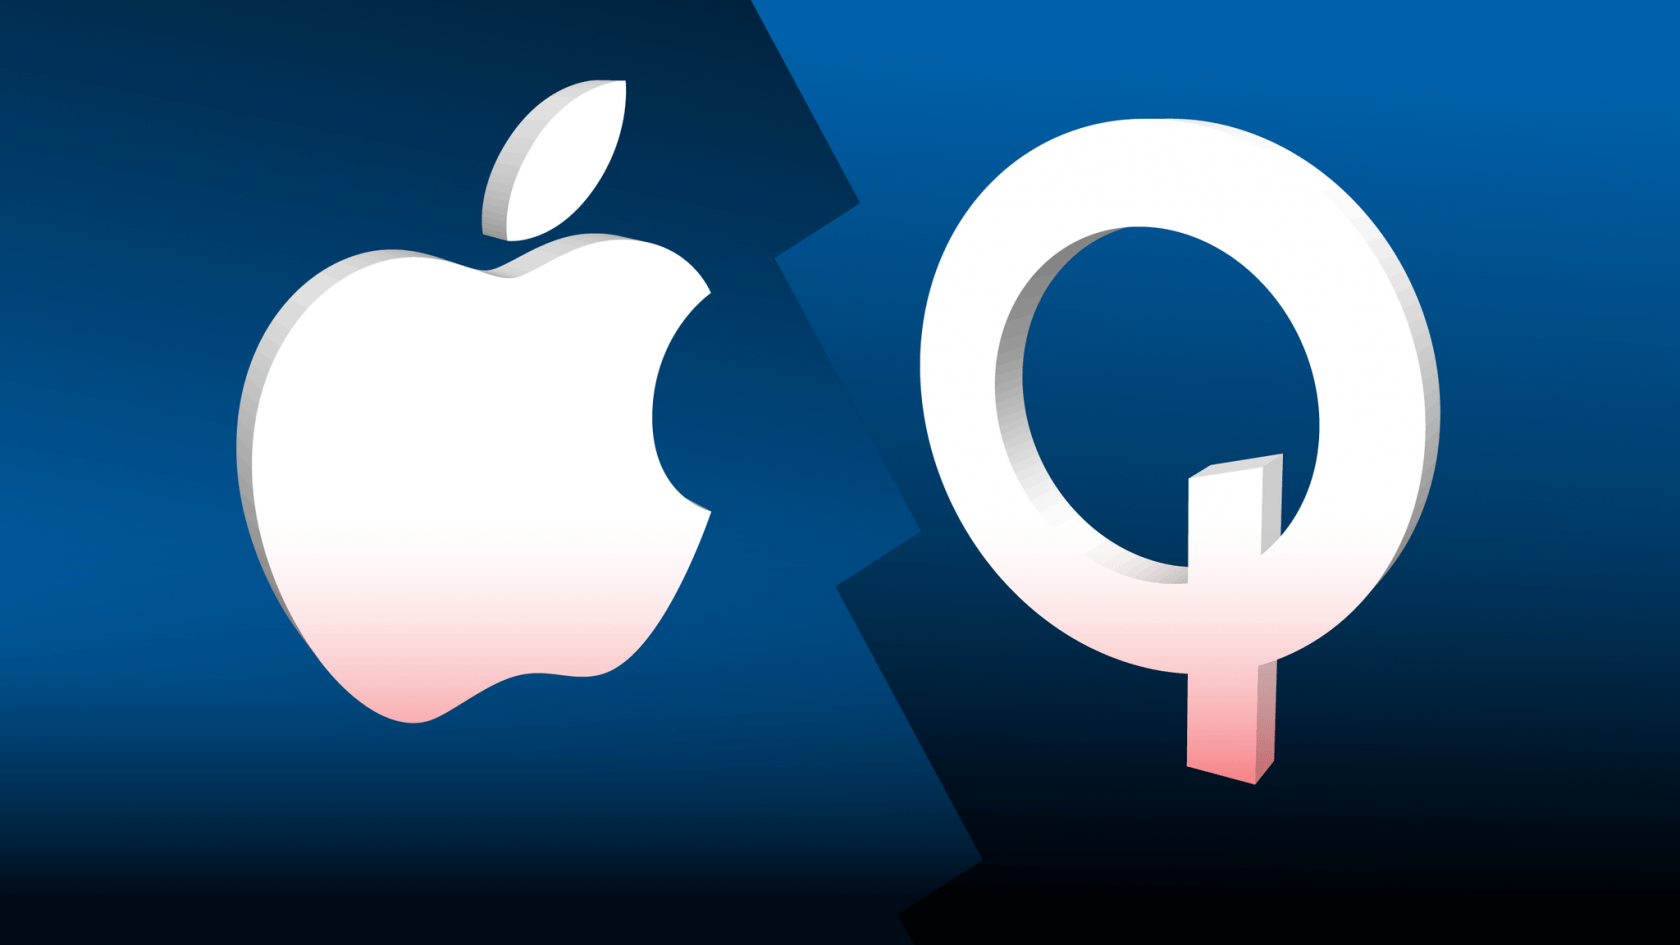 Qualcomm Apple lawsuit: Jury awards $31 million in patent lawsuit to Qualcomm